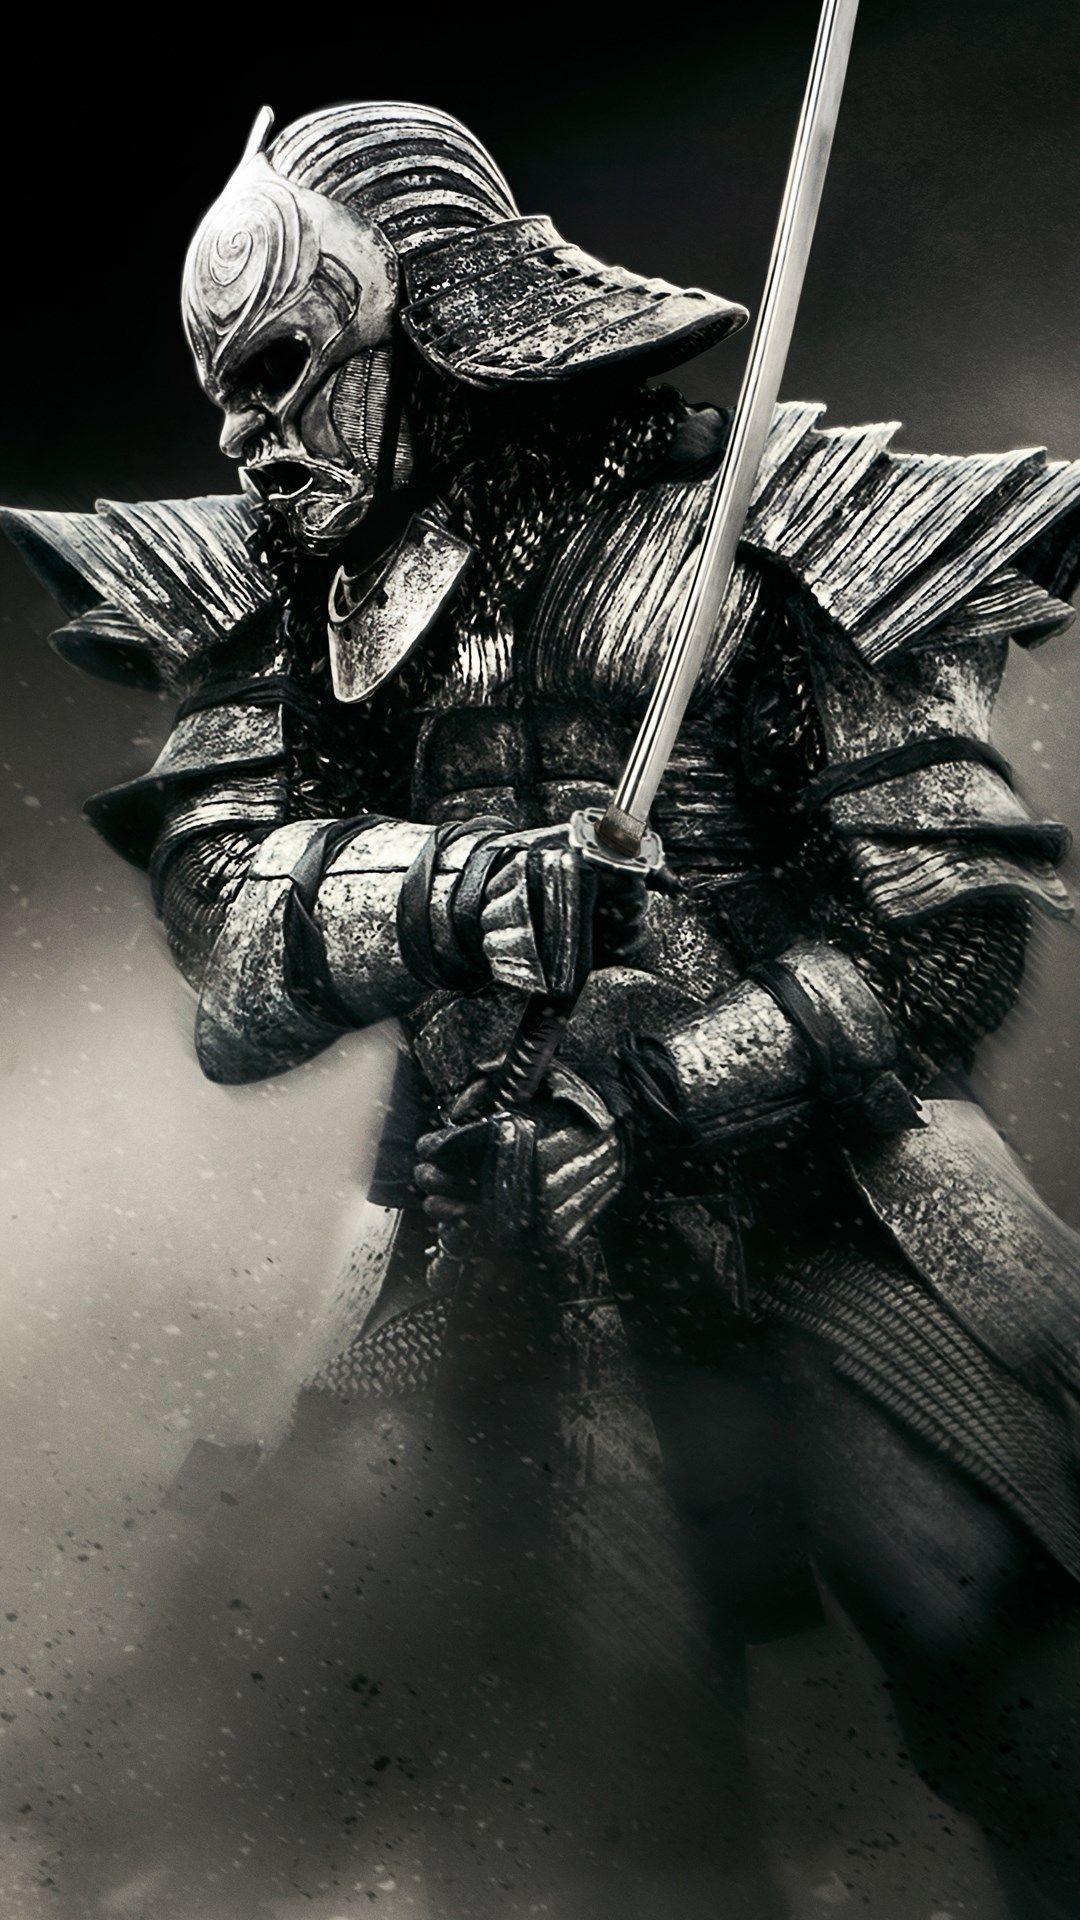 Ronin Iphone Wallpapers Top Free Ronin Iphone Backgrounds